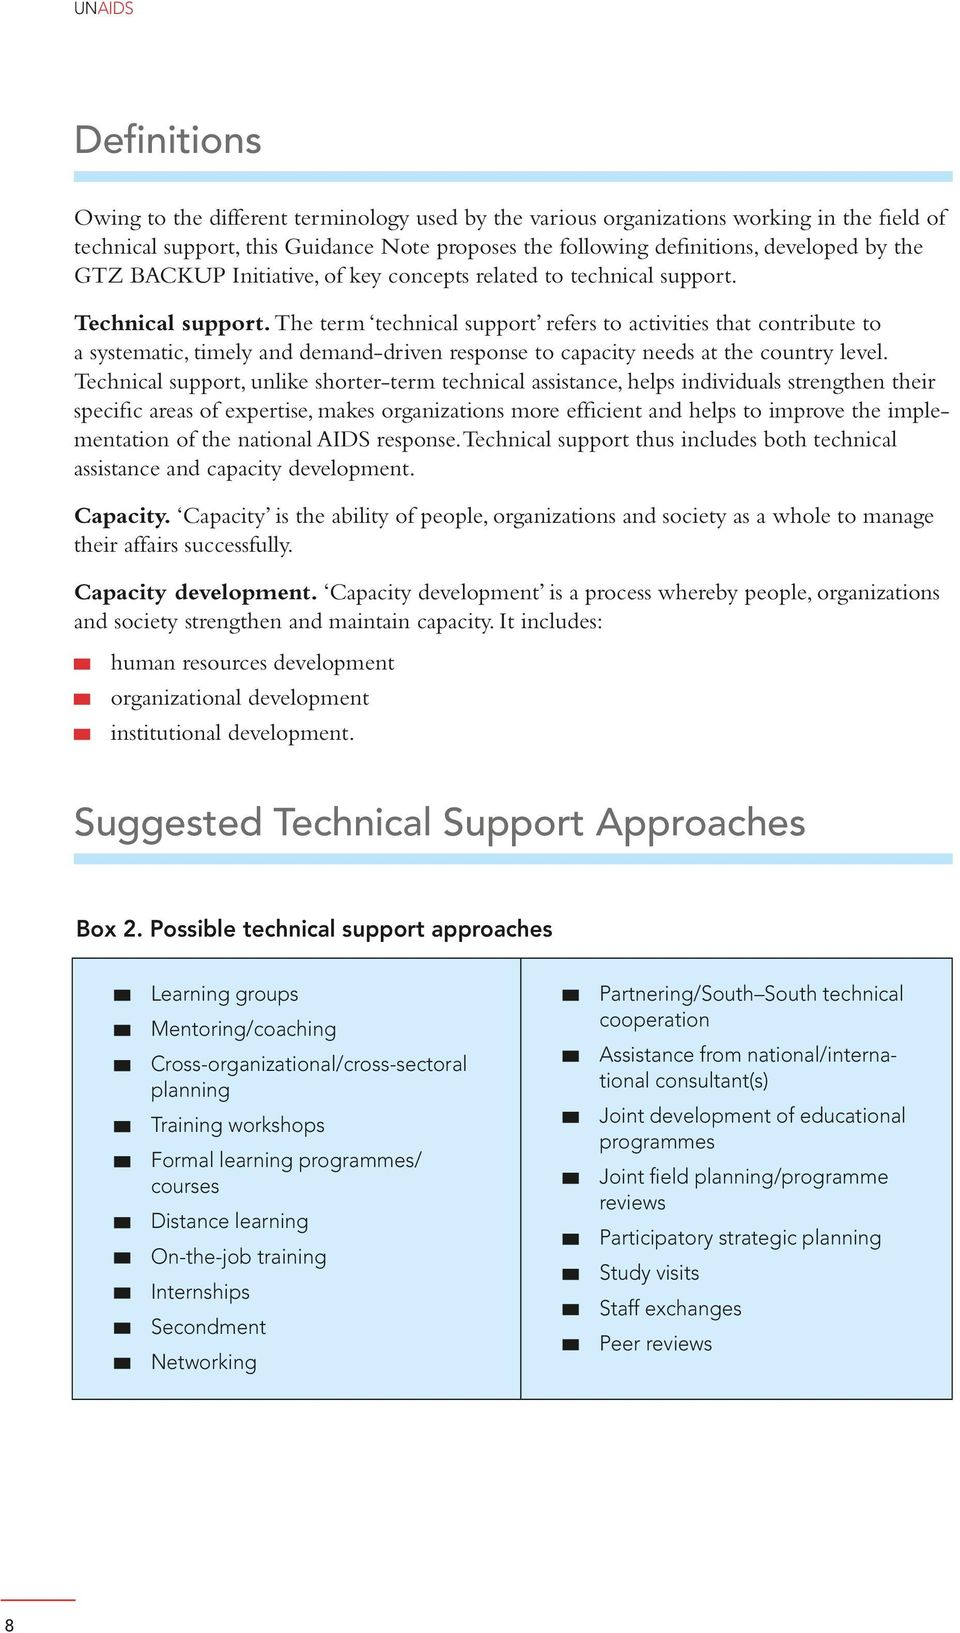 The term technical support refers to activities that contribute to a systematic, timely and demand-driven response to capacity needs at the country level.